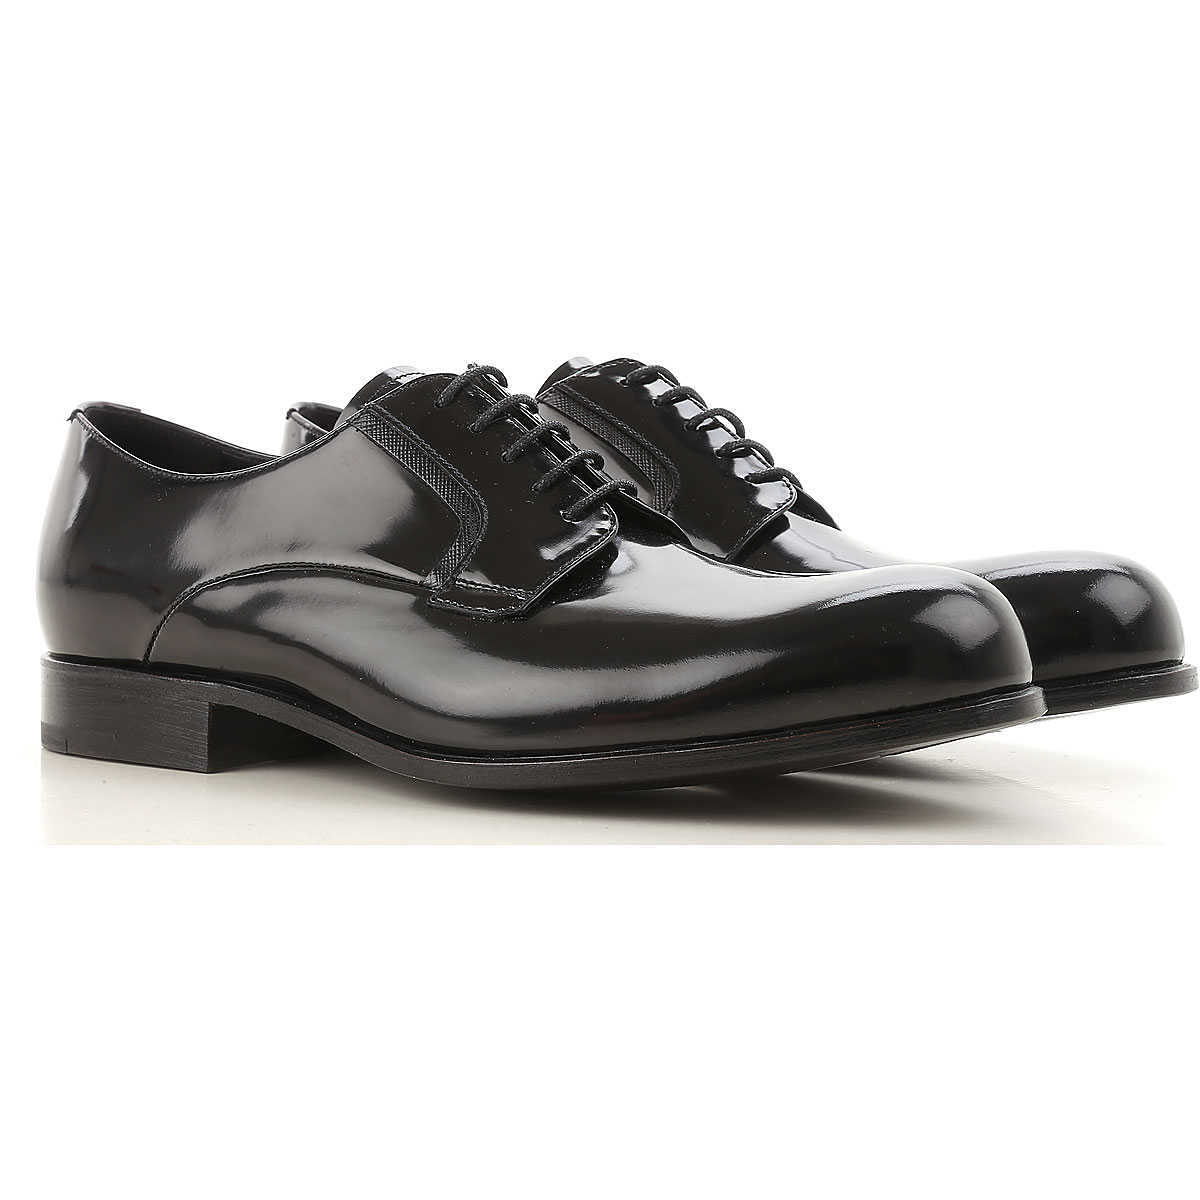 Prada Lace Up Shoes for Men Oxfords 6 9 Derbies and Brogues On Sale in Outlet UK - GOOFASH